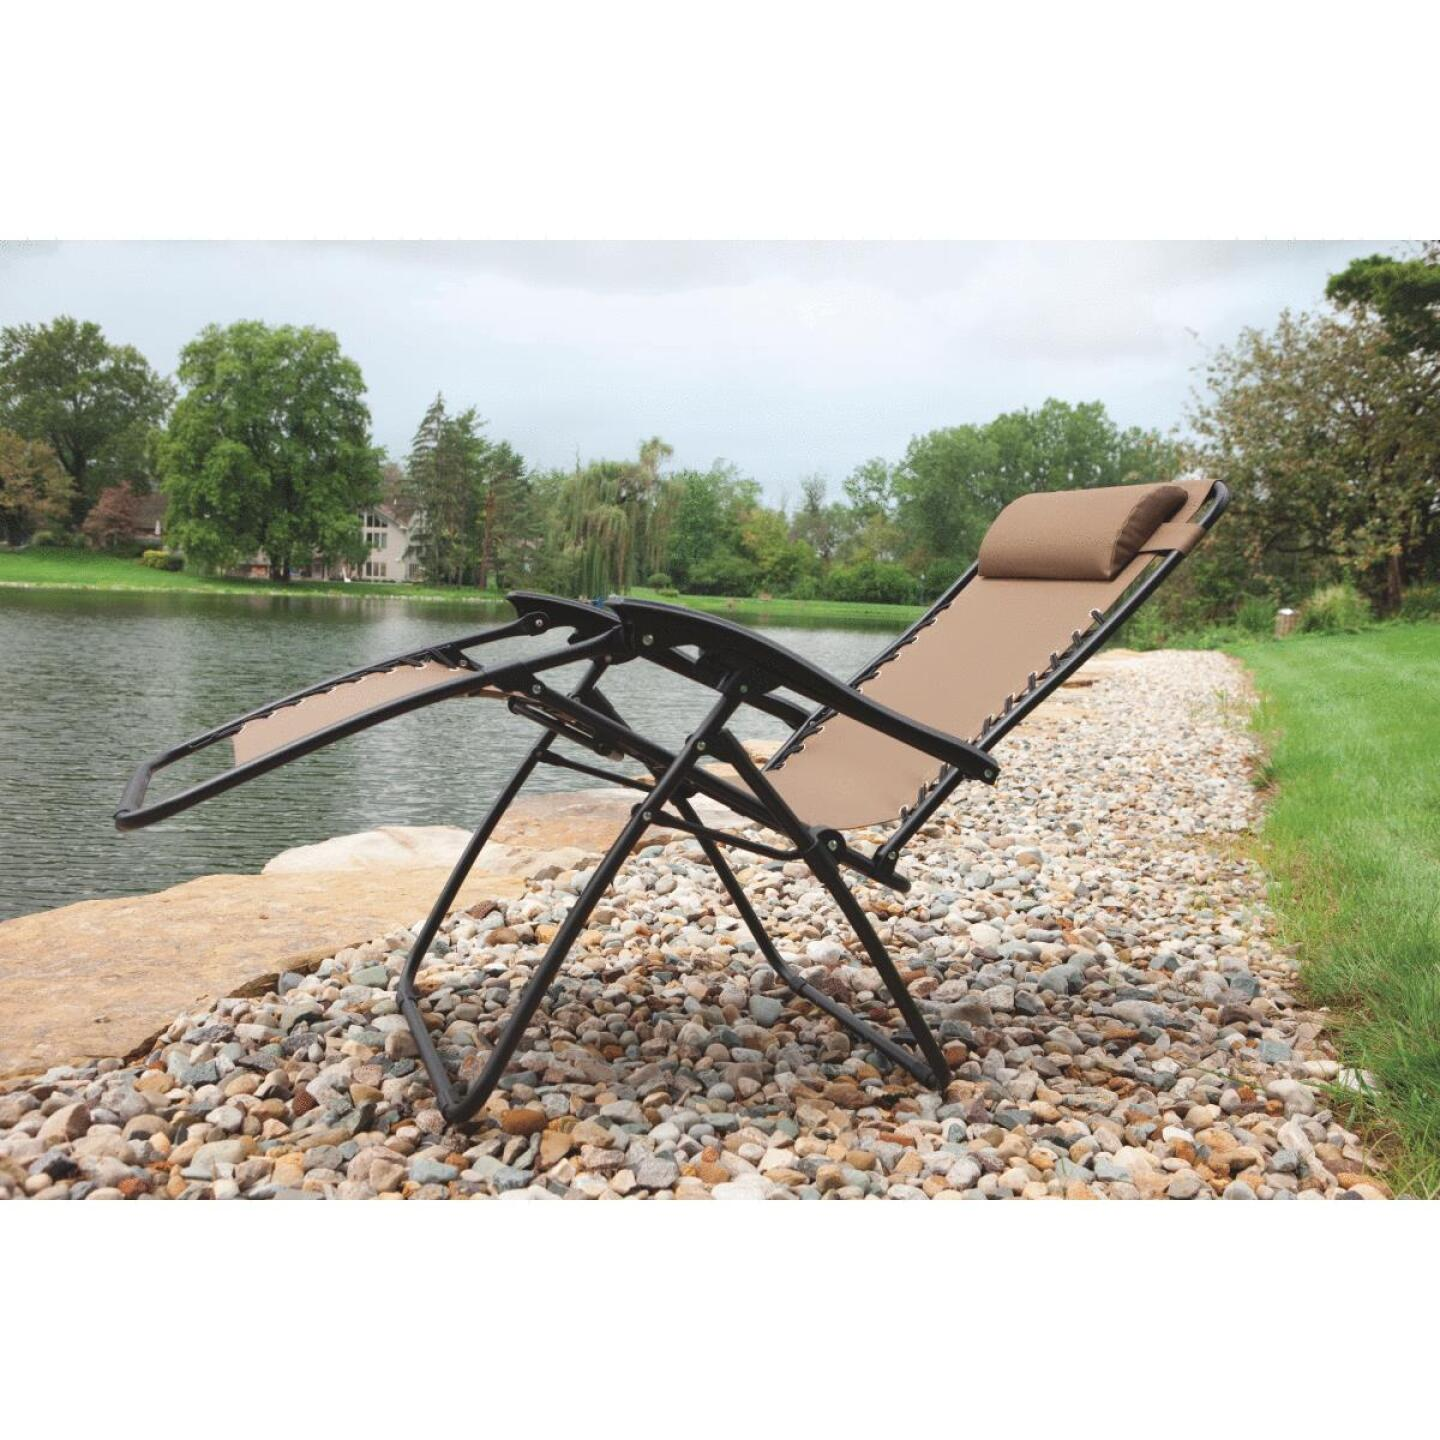 Outdoor Expressions Zero Gravity Relaxer Tan Convertible Lounge Chair Image 4